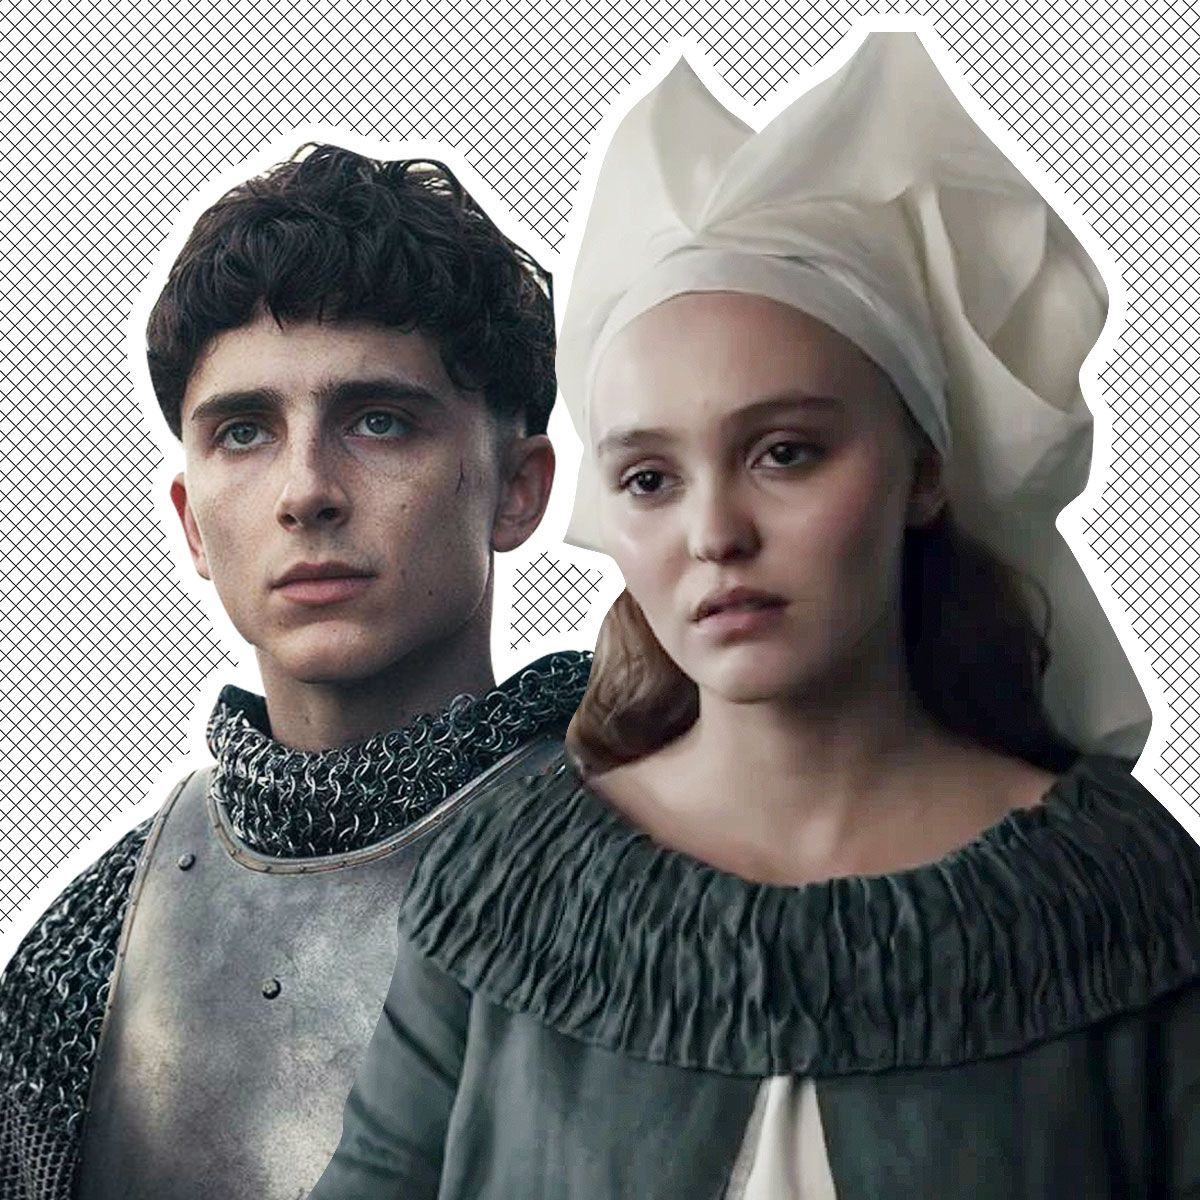 The King Review 2019 Timothee Chalamet S Bowl Cut Bores